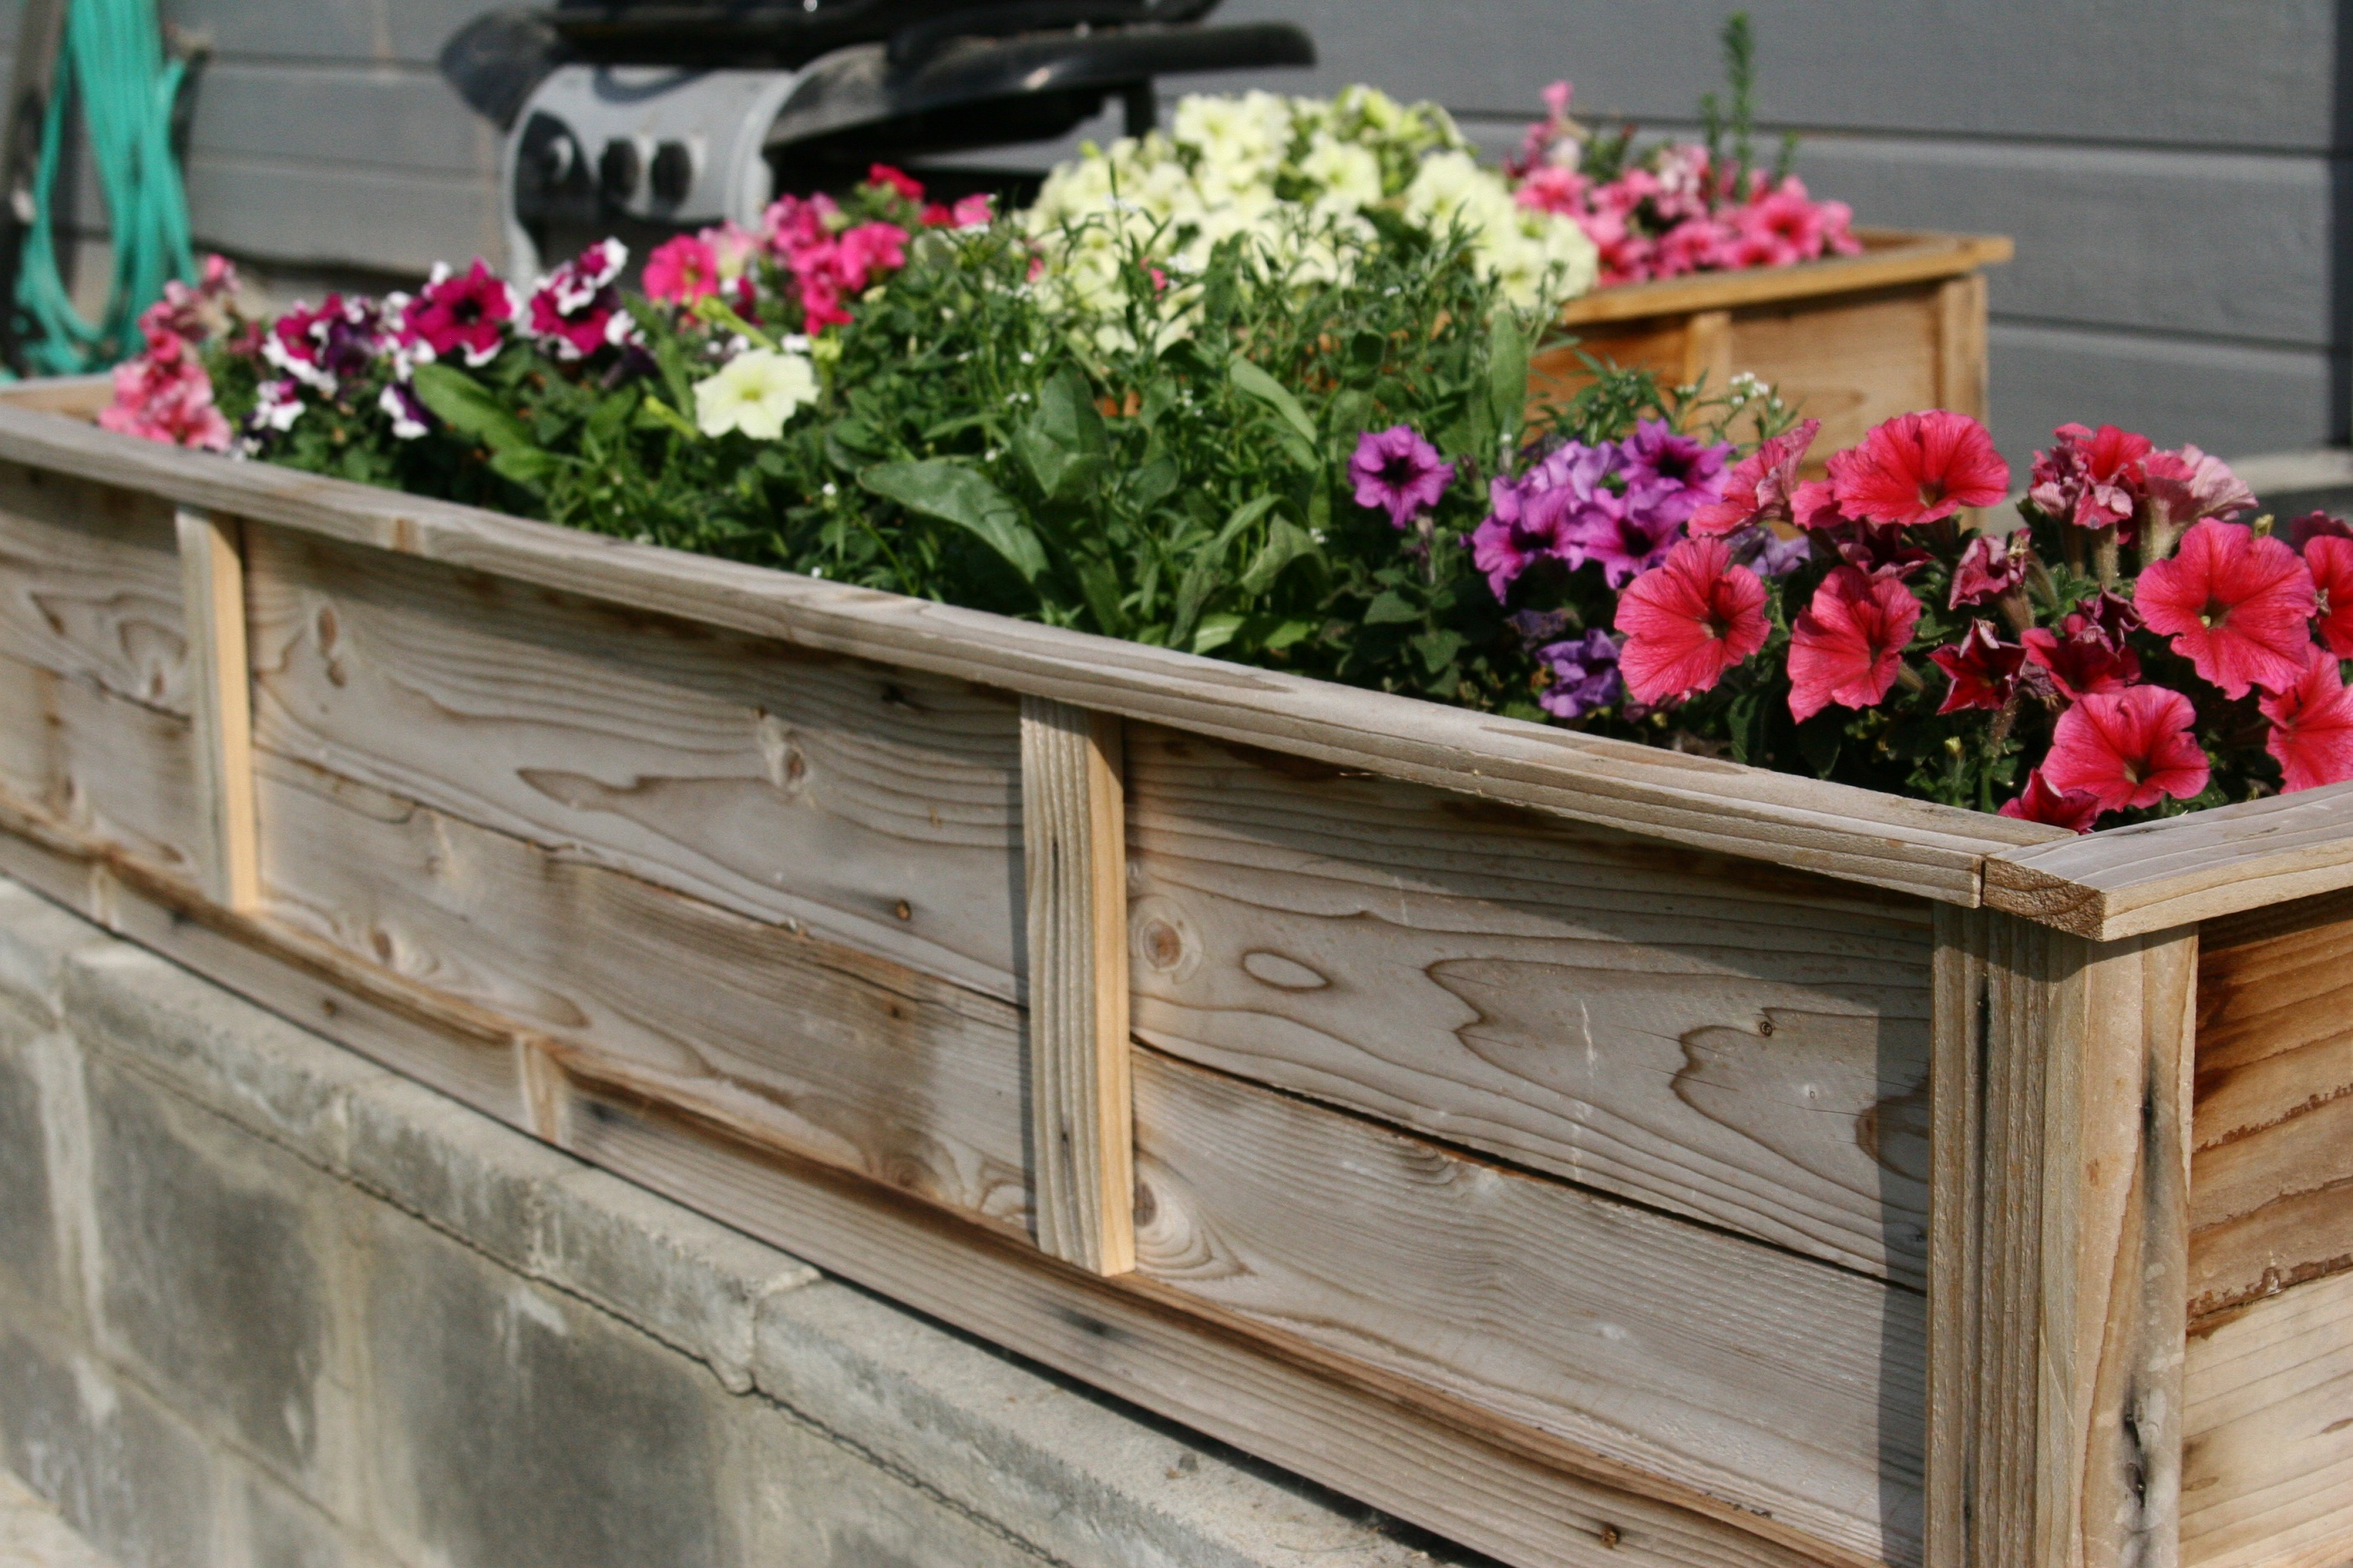 Ana white raised flower planter beds diy projects for Flower garden box ideas